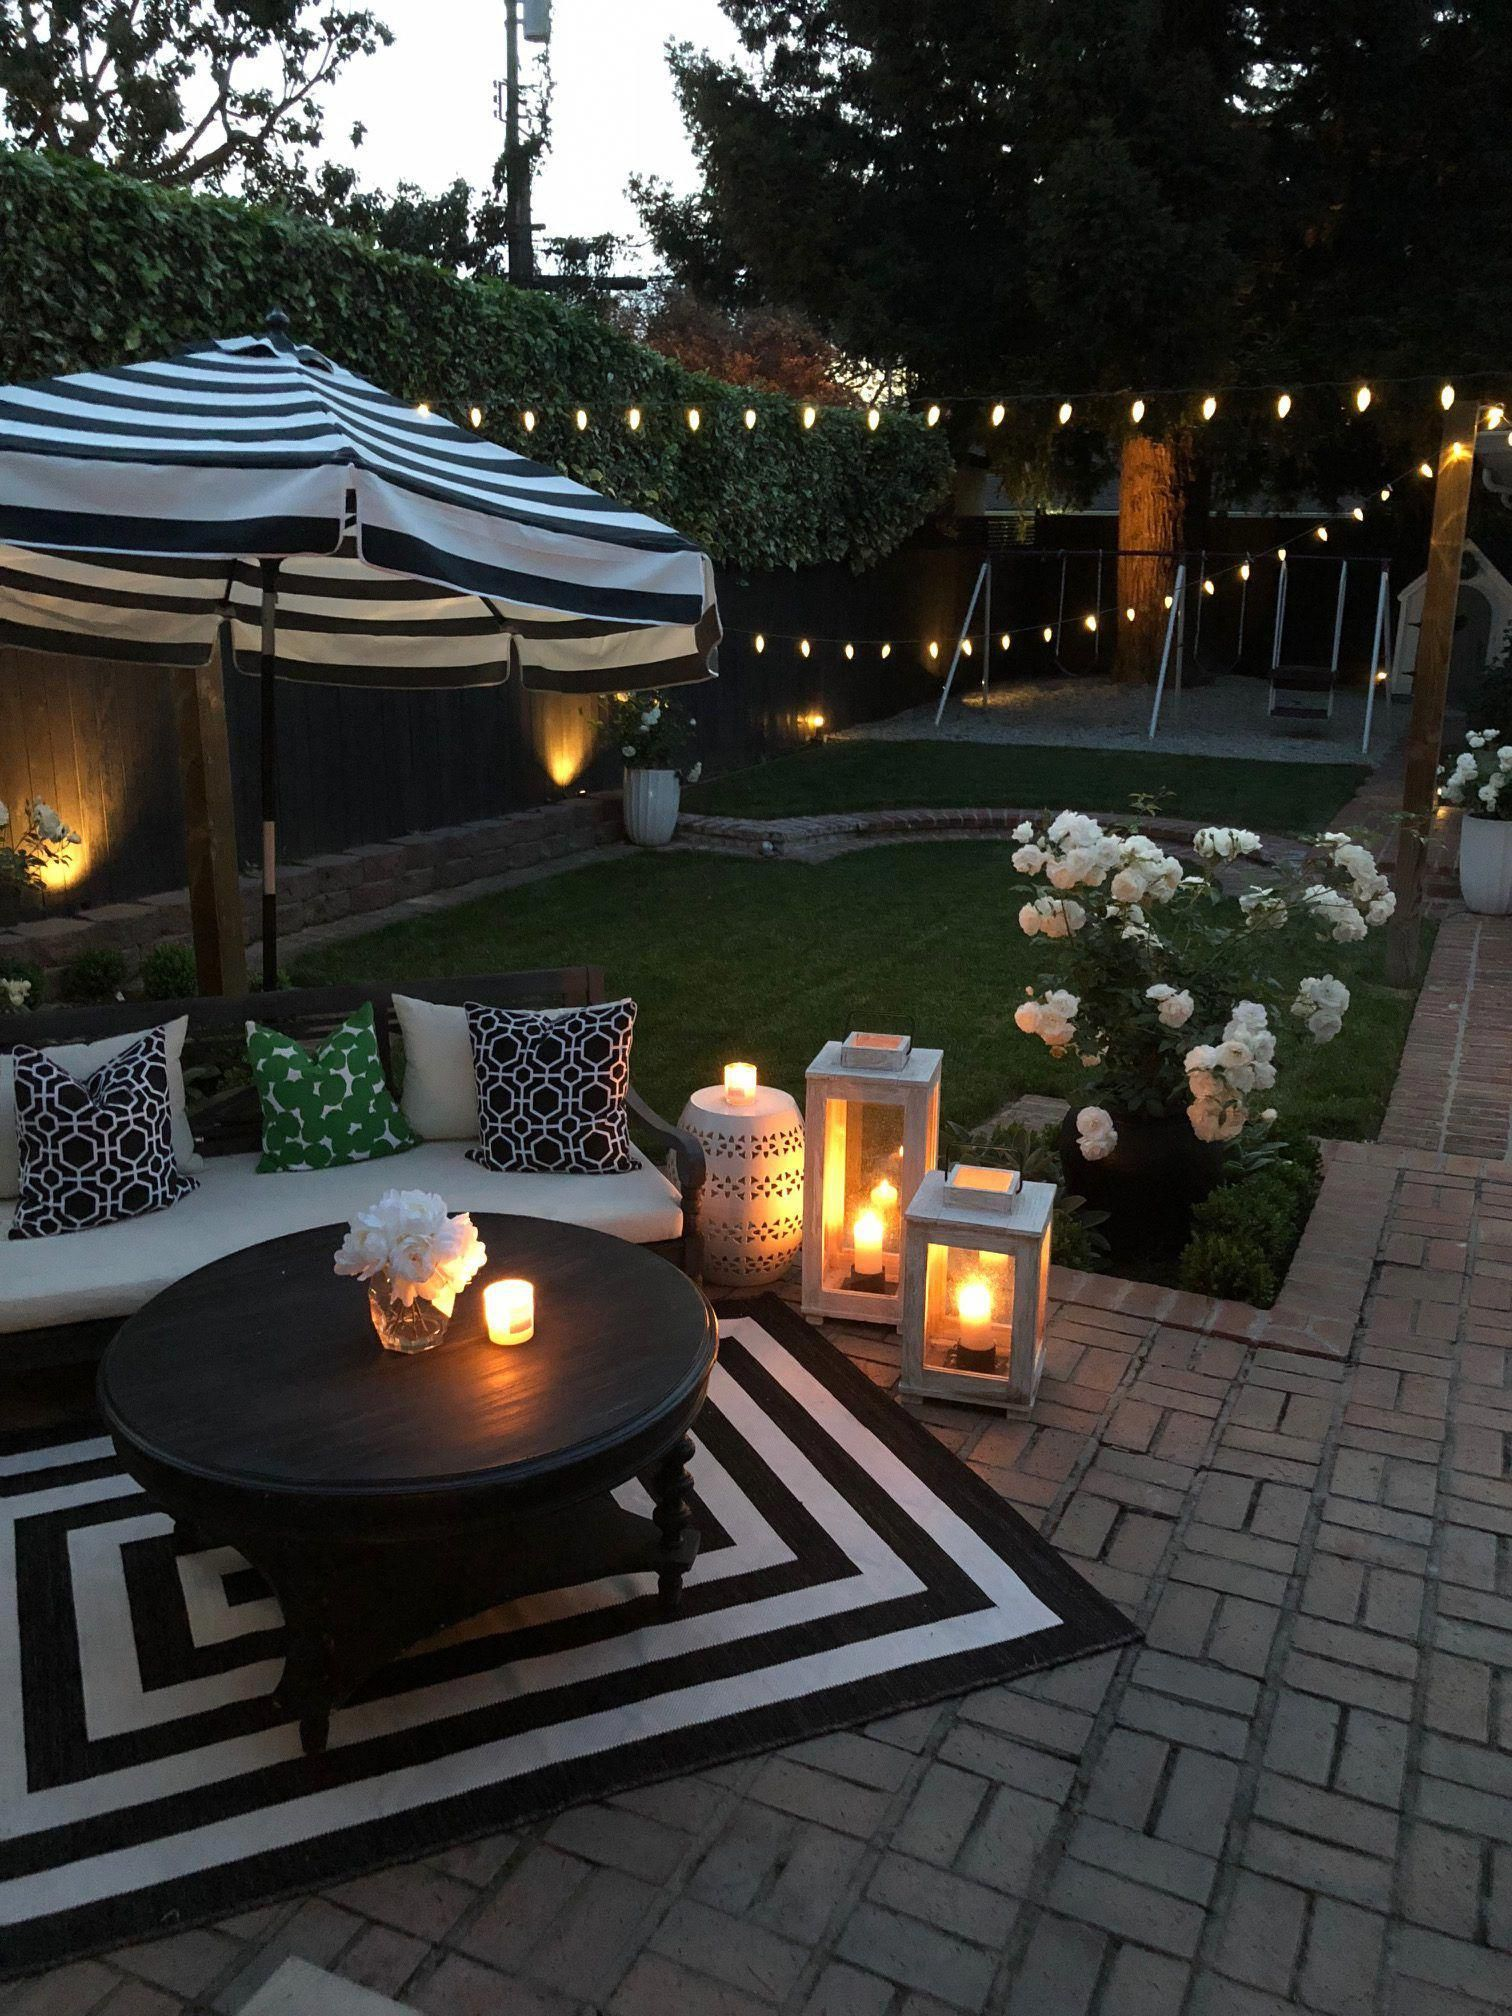 Welcome to my Spring Garden - Crazy Chic Design ... on outdoor led patio lighting, outdoor bars with beer gardens, outdoor landscape lighting, string lights for wedding reception ideas, outdoor date night ideas, outdoor backyard chandelier, outdoor patio lighting fixtures, outdoor garden lighting, outdoor backyard bathroom, outdoor movie theater seating ideas, outdoor backyard accessories, outdoor french patio doors, outdoor backyard movie night, back yard landscaping design ideas, outdoor backyard led lighting, outdoor garden arbors with gates, outdoor backyard design, outdoor backyard wedding, outdoor covered patio ceiling designs, outdoor ground lighting,